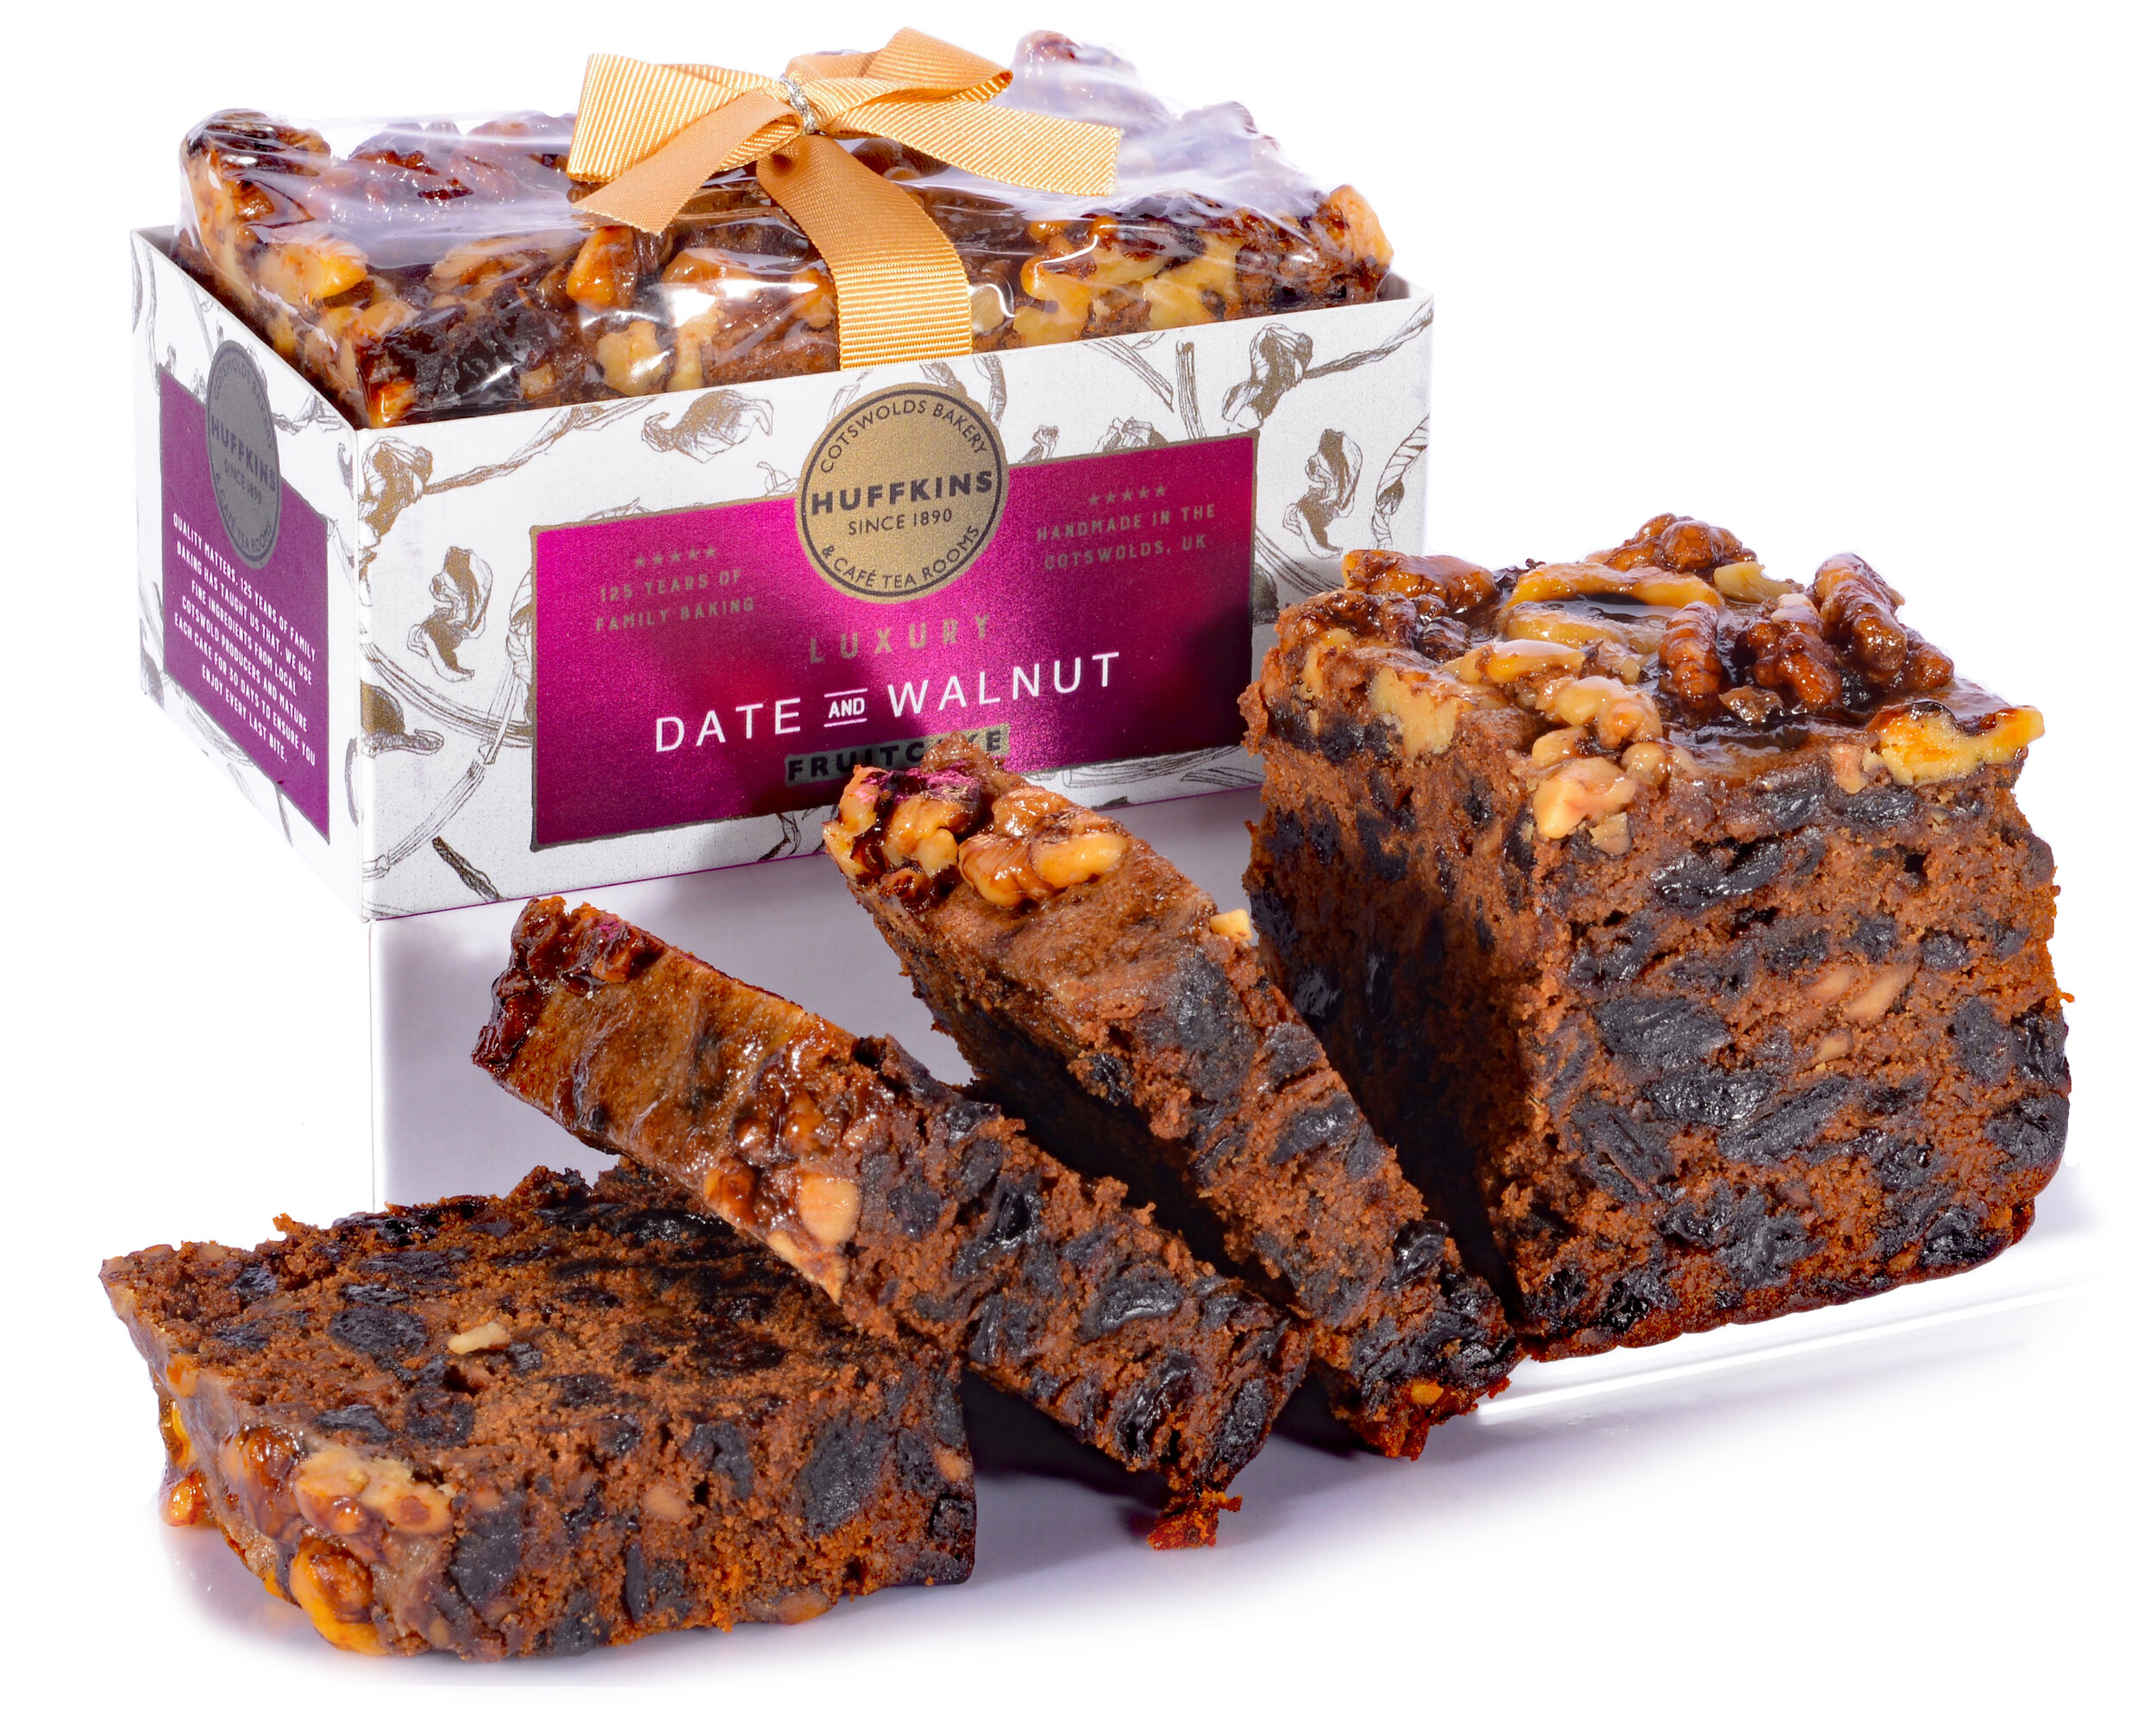 Luxury Gift Fruitcakes - The Gold Standard